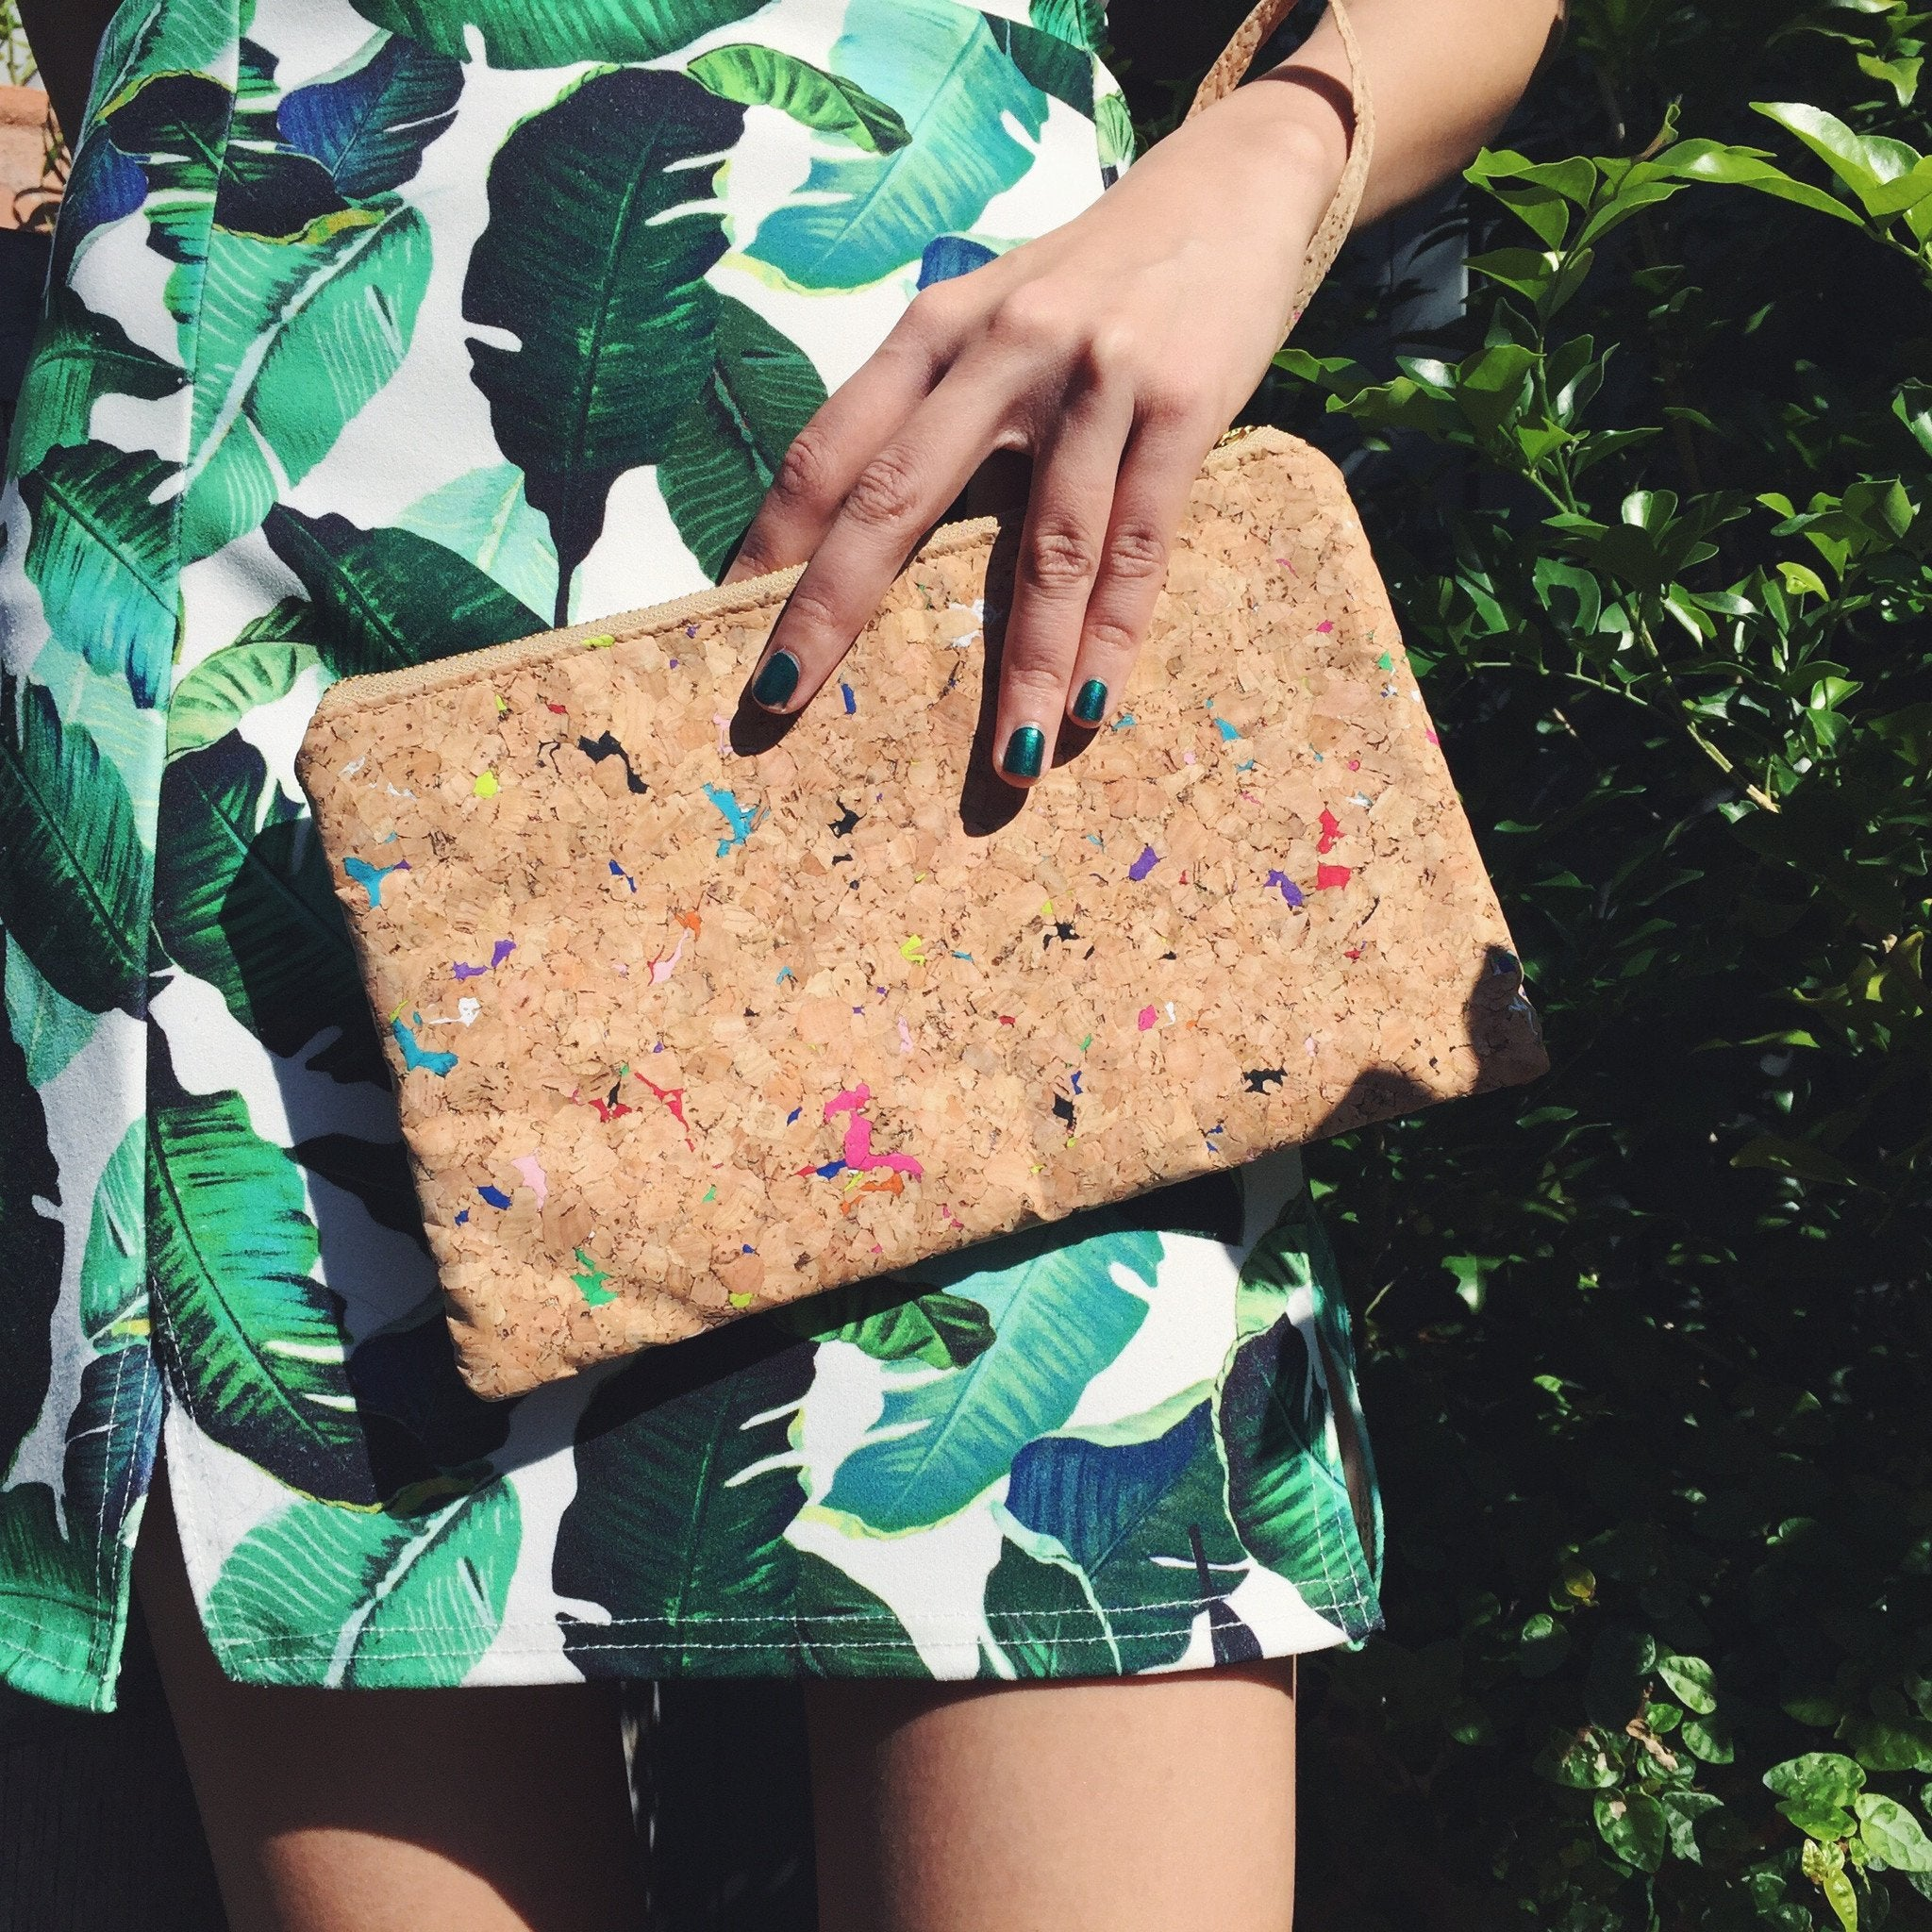 Colourful Vivid Annie Clutch Bag Cruelty Free Ethical Vegan Recycled